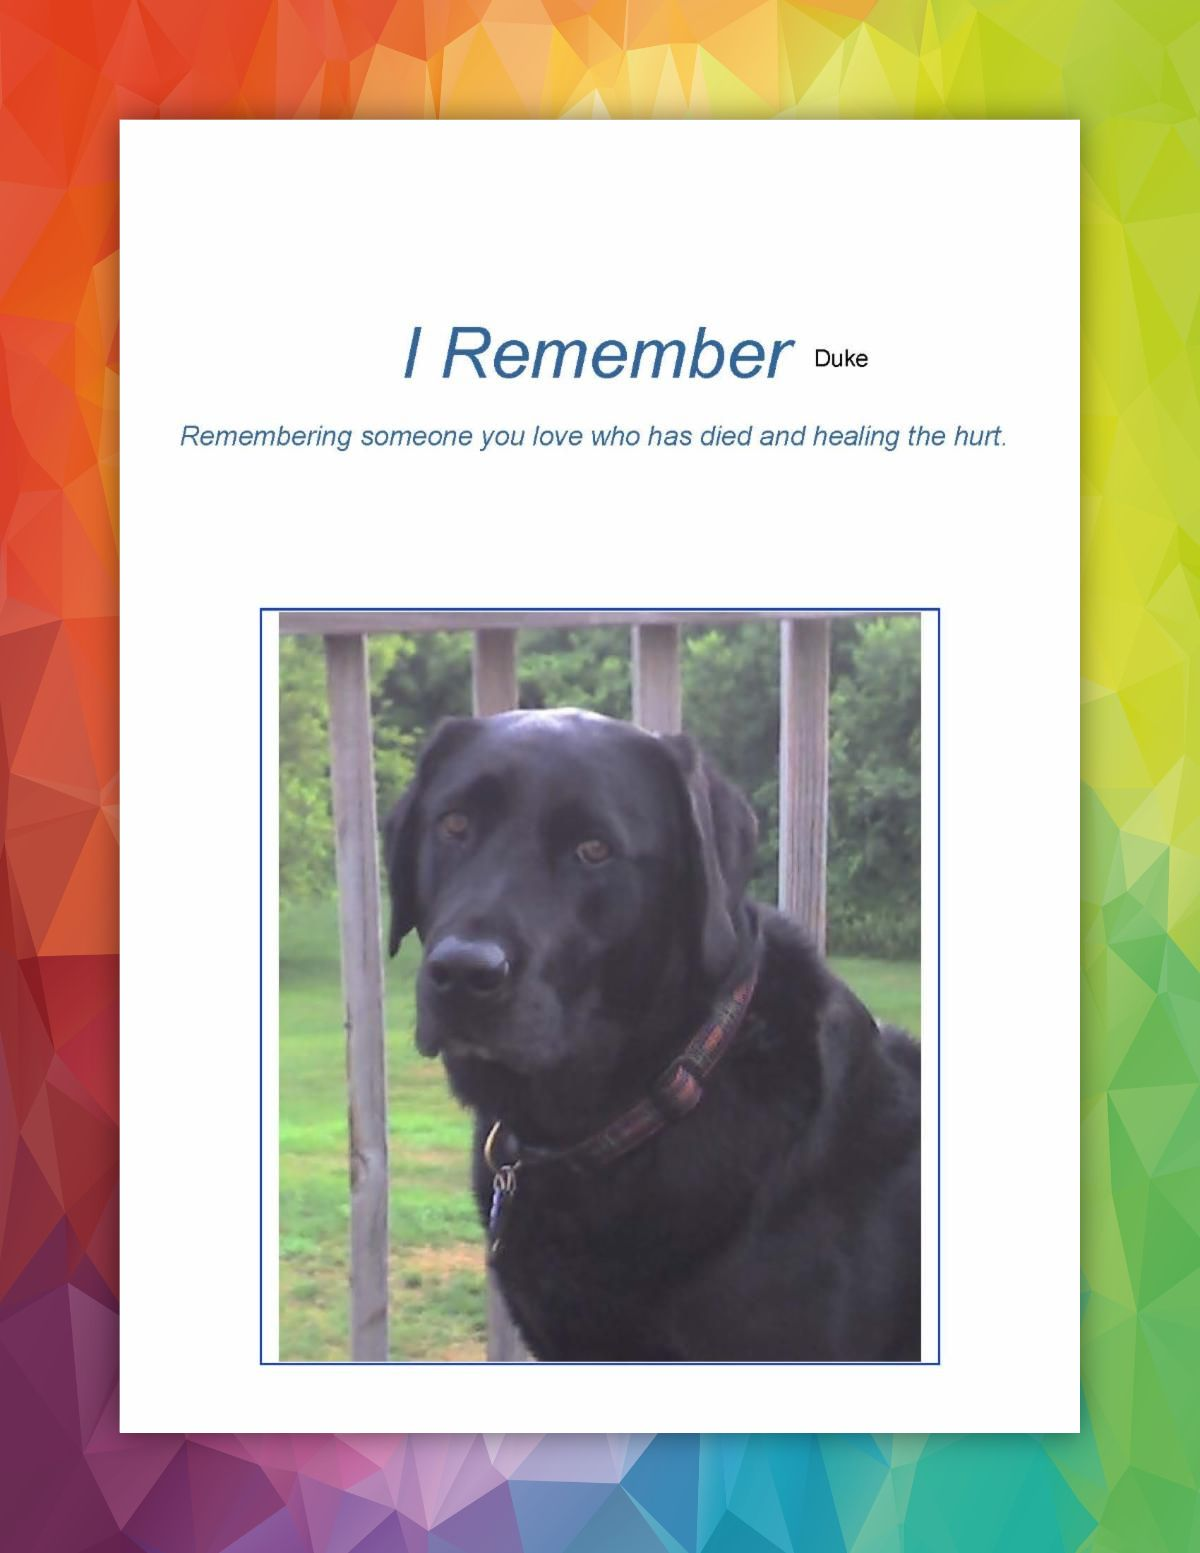 I Remember Duke sample cover with picture of a black lab just his face and shoulders with posts of a fence behind him and grass and woods background